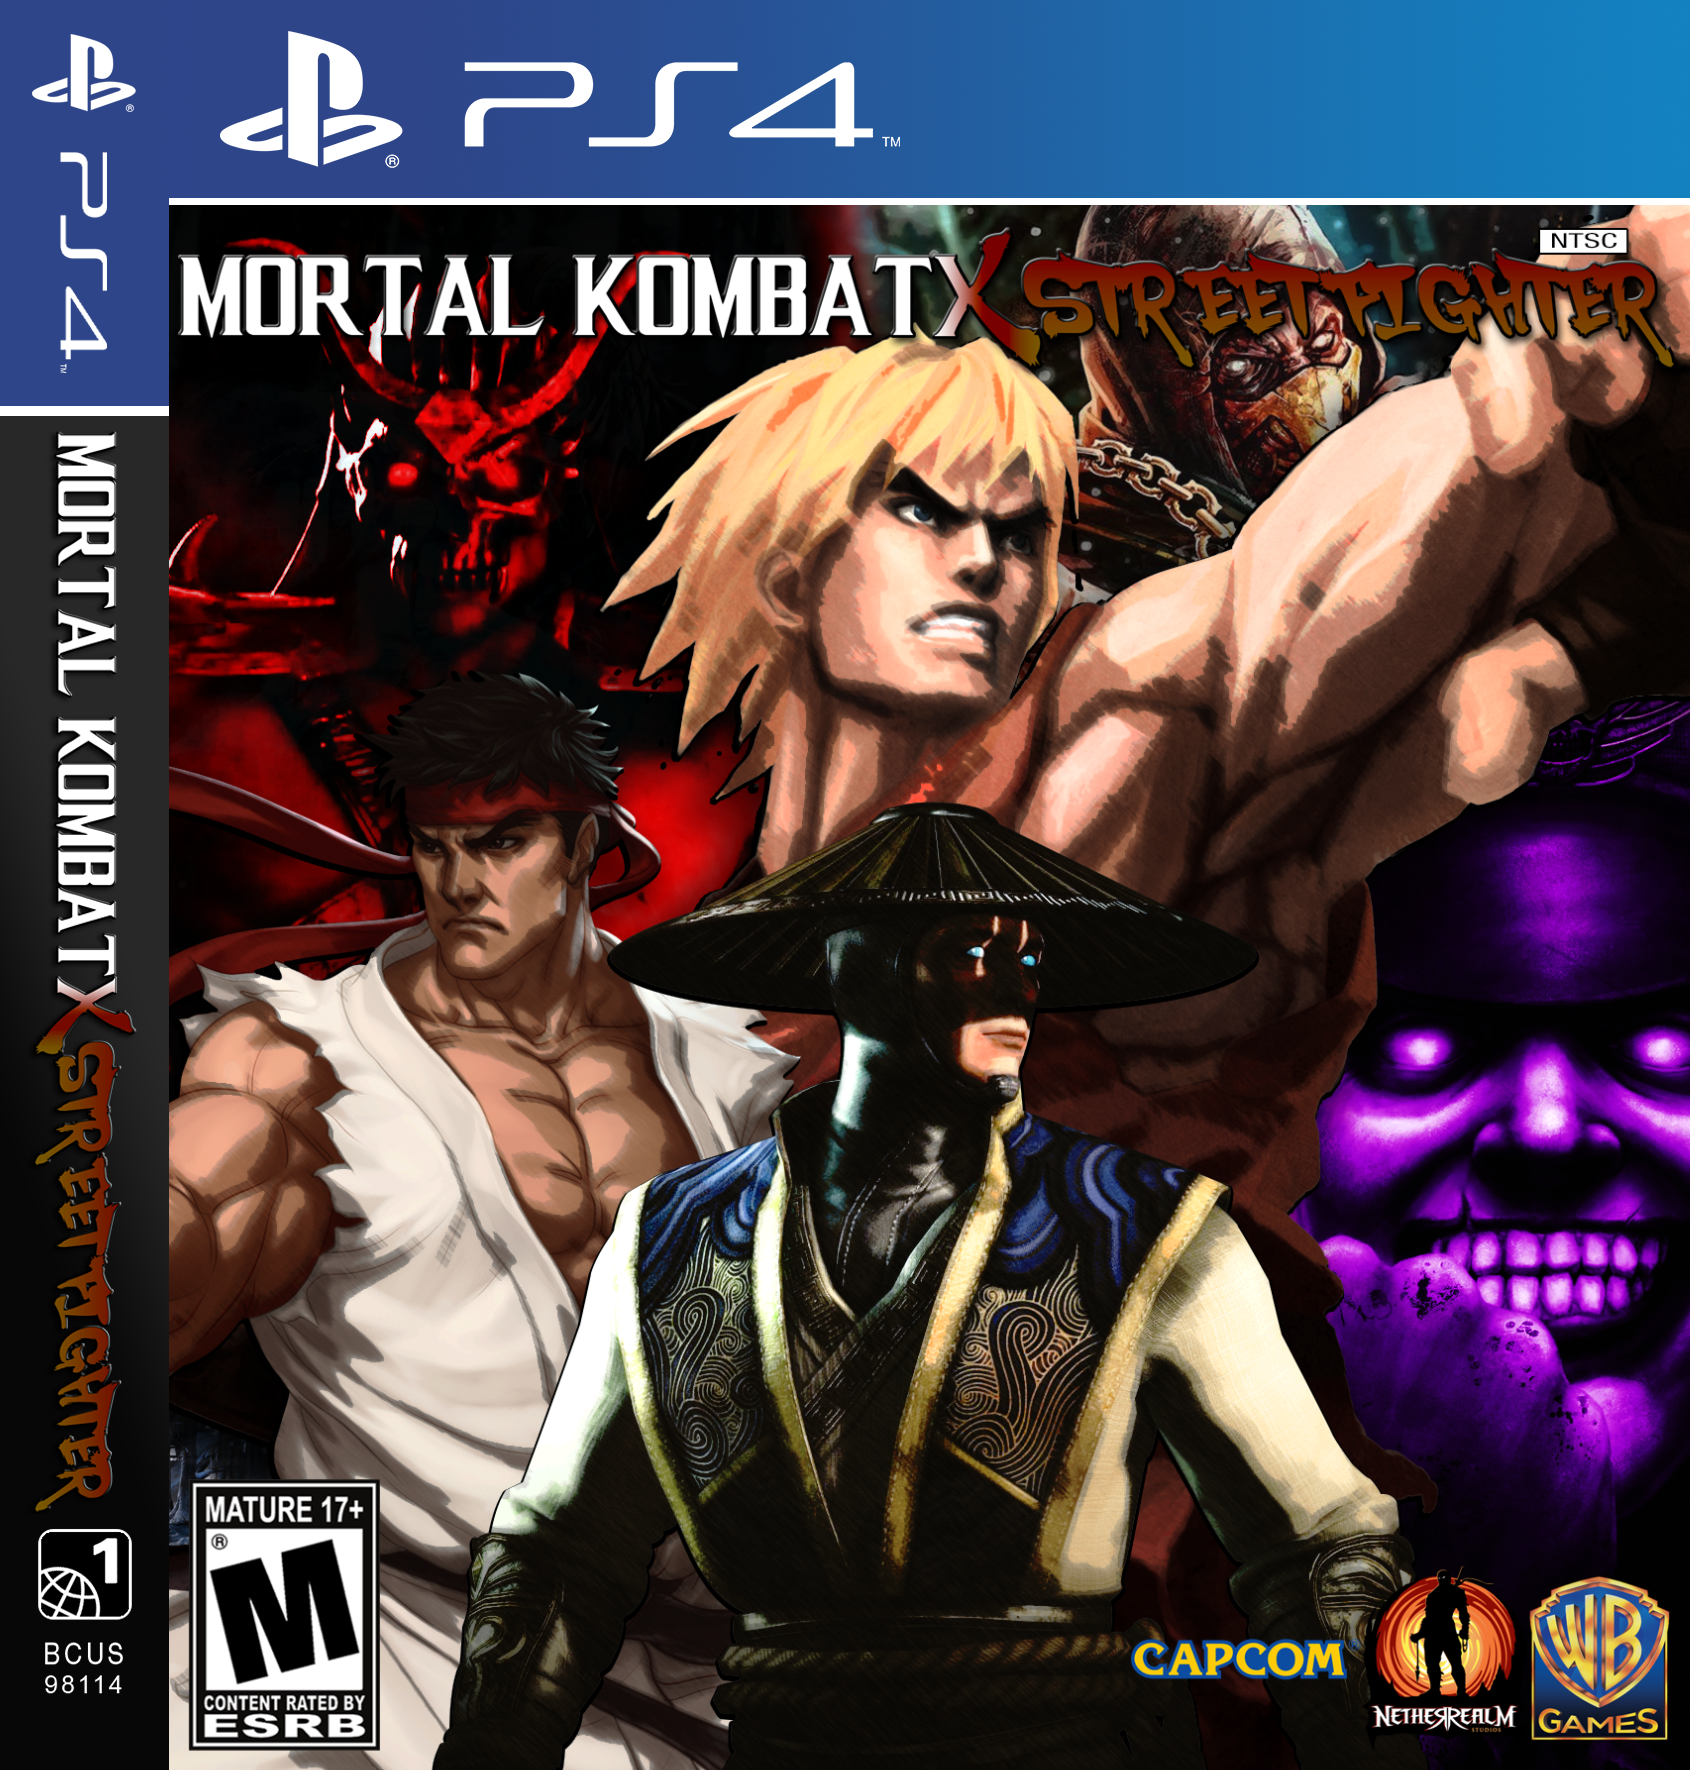 Mortal Kombat X Street Fighter Ps4 Cover By Xxkyrarosalesxx On